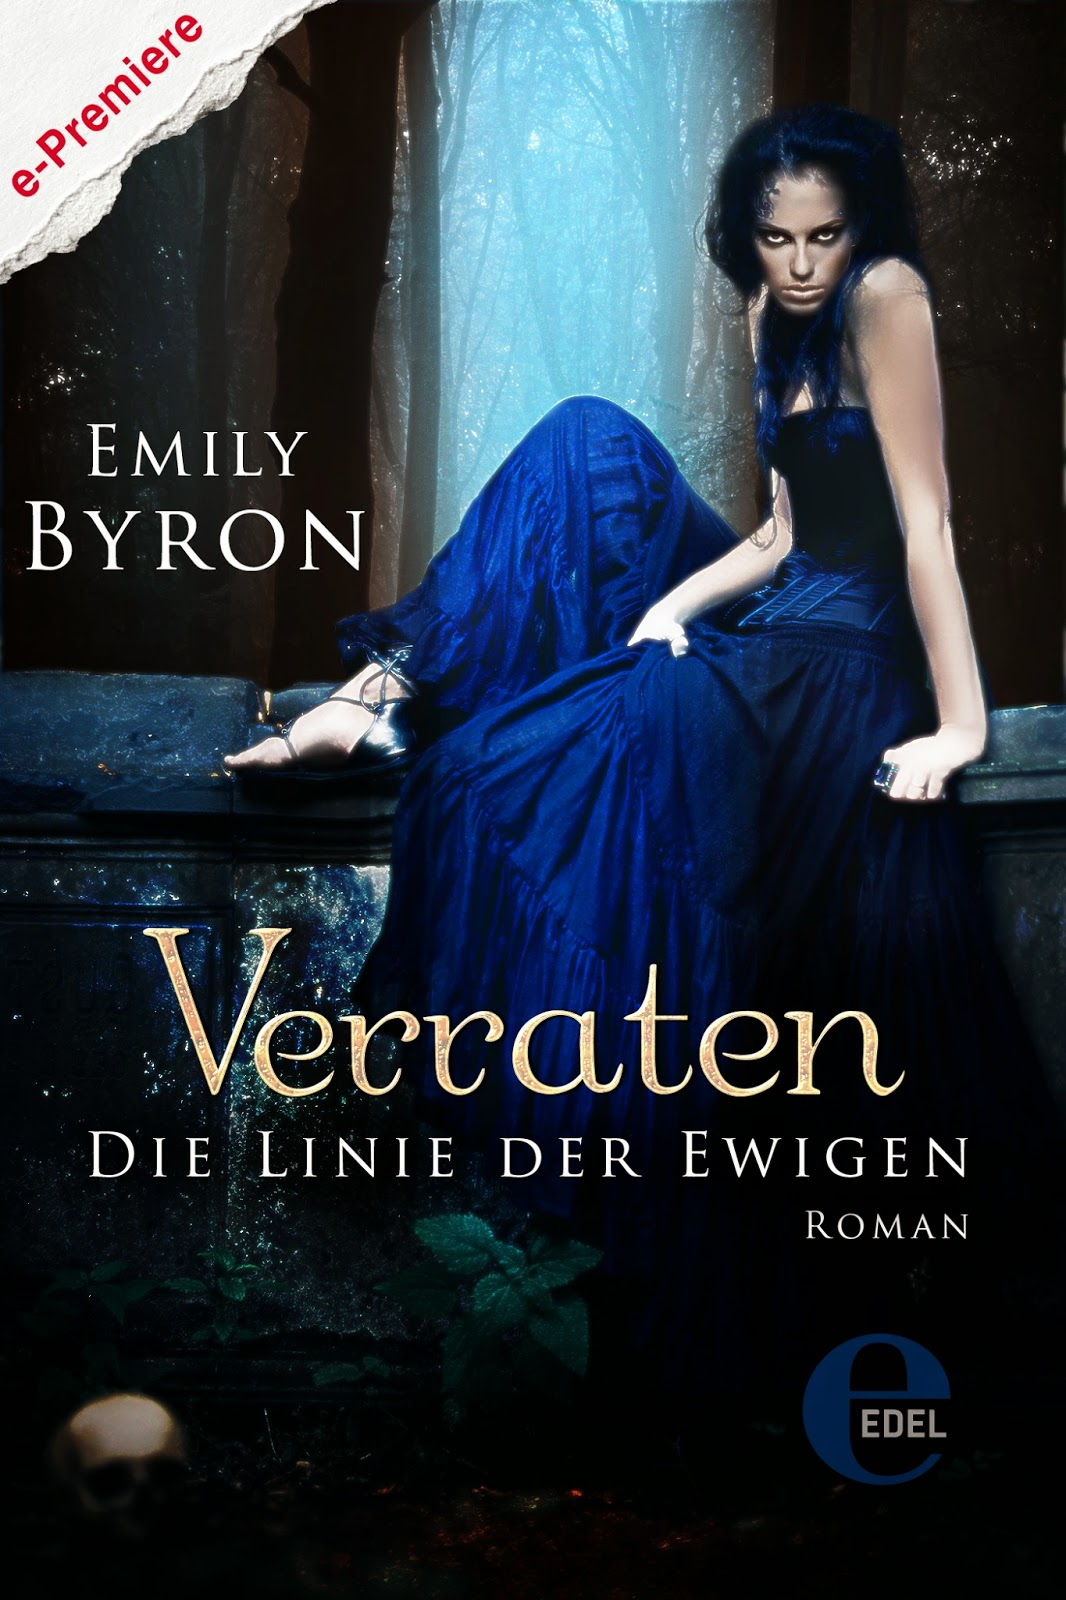 http://www.amazon.de/Verraten-Linie-Ewigen-Emily-Byron-ebook/dp/B00LI1RE8G/ref=sr_1_5?s=books&ie=UTF8&qid=1404409389&sr=1-5&keywords=emily+byron